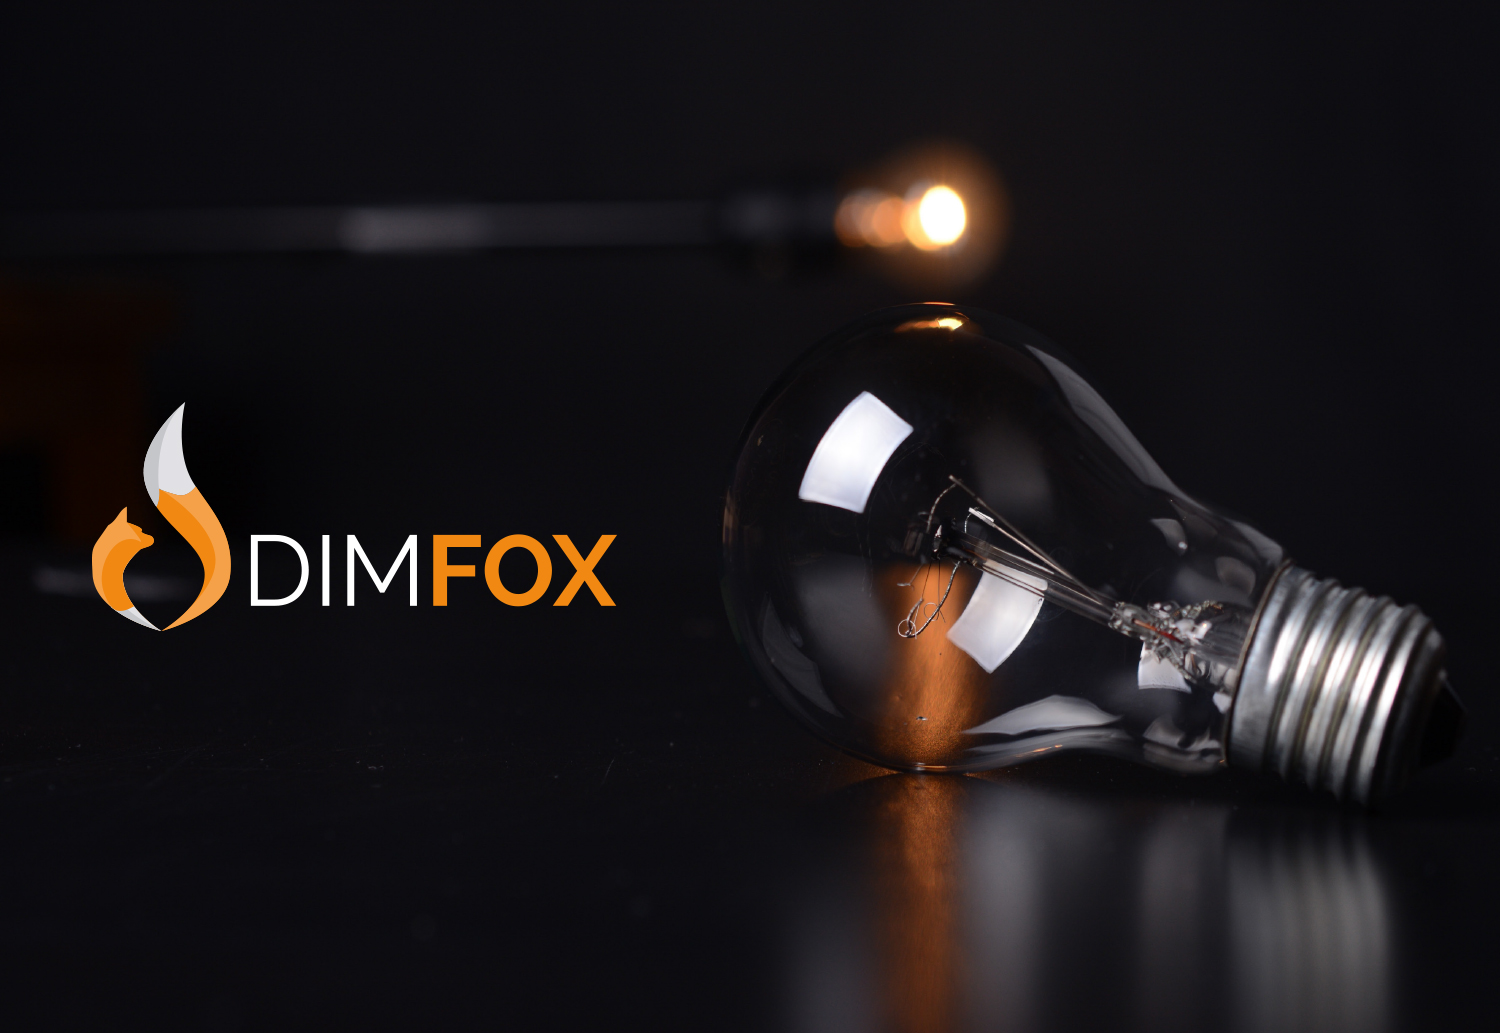 DIMFOX Logo Design -  Unused Concept Brand Application